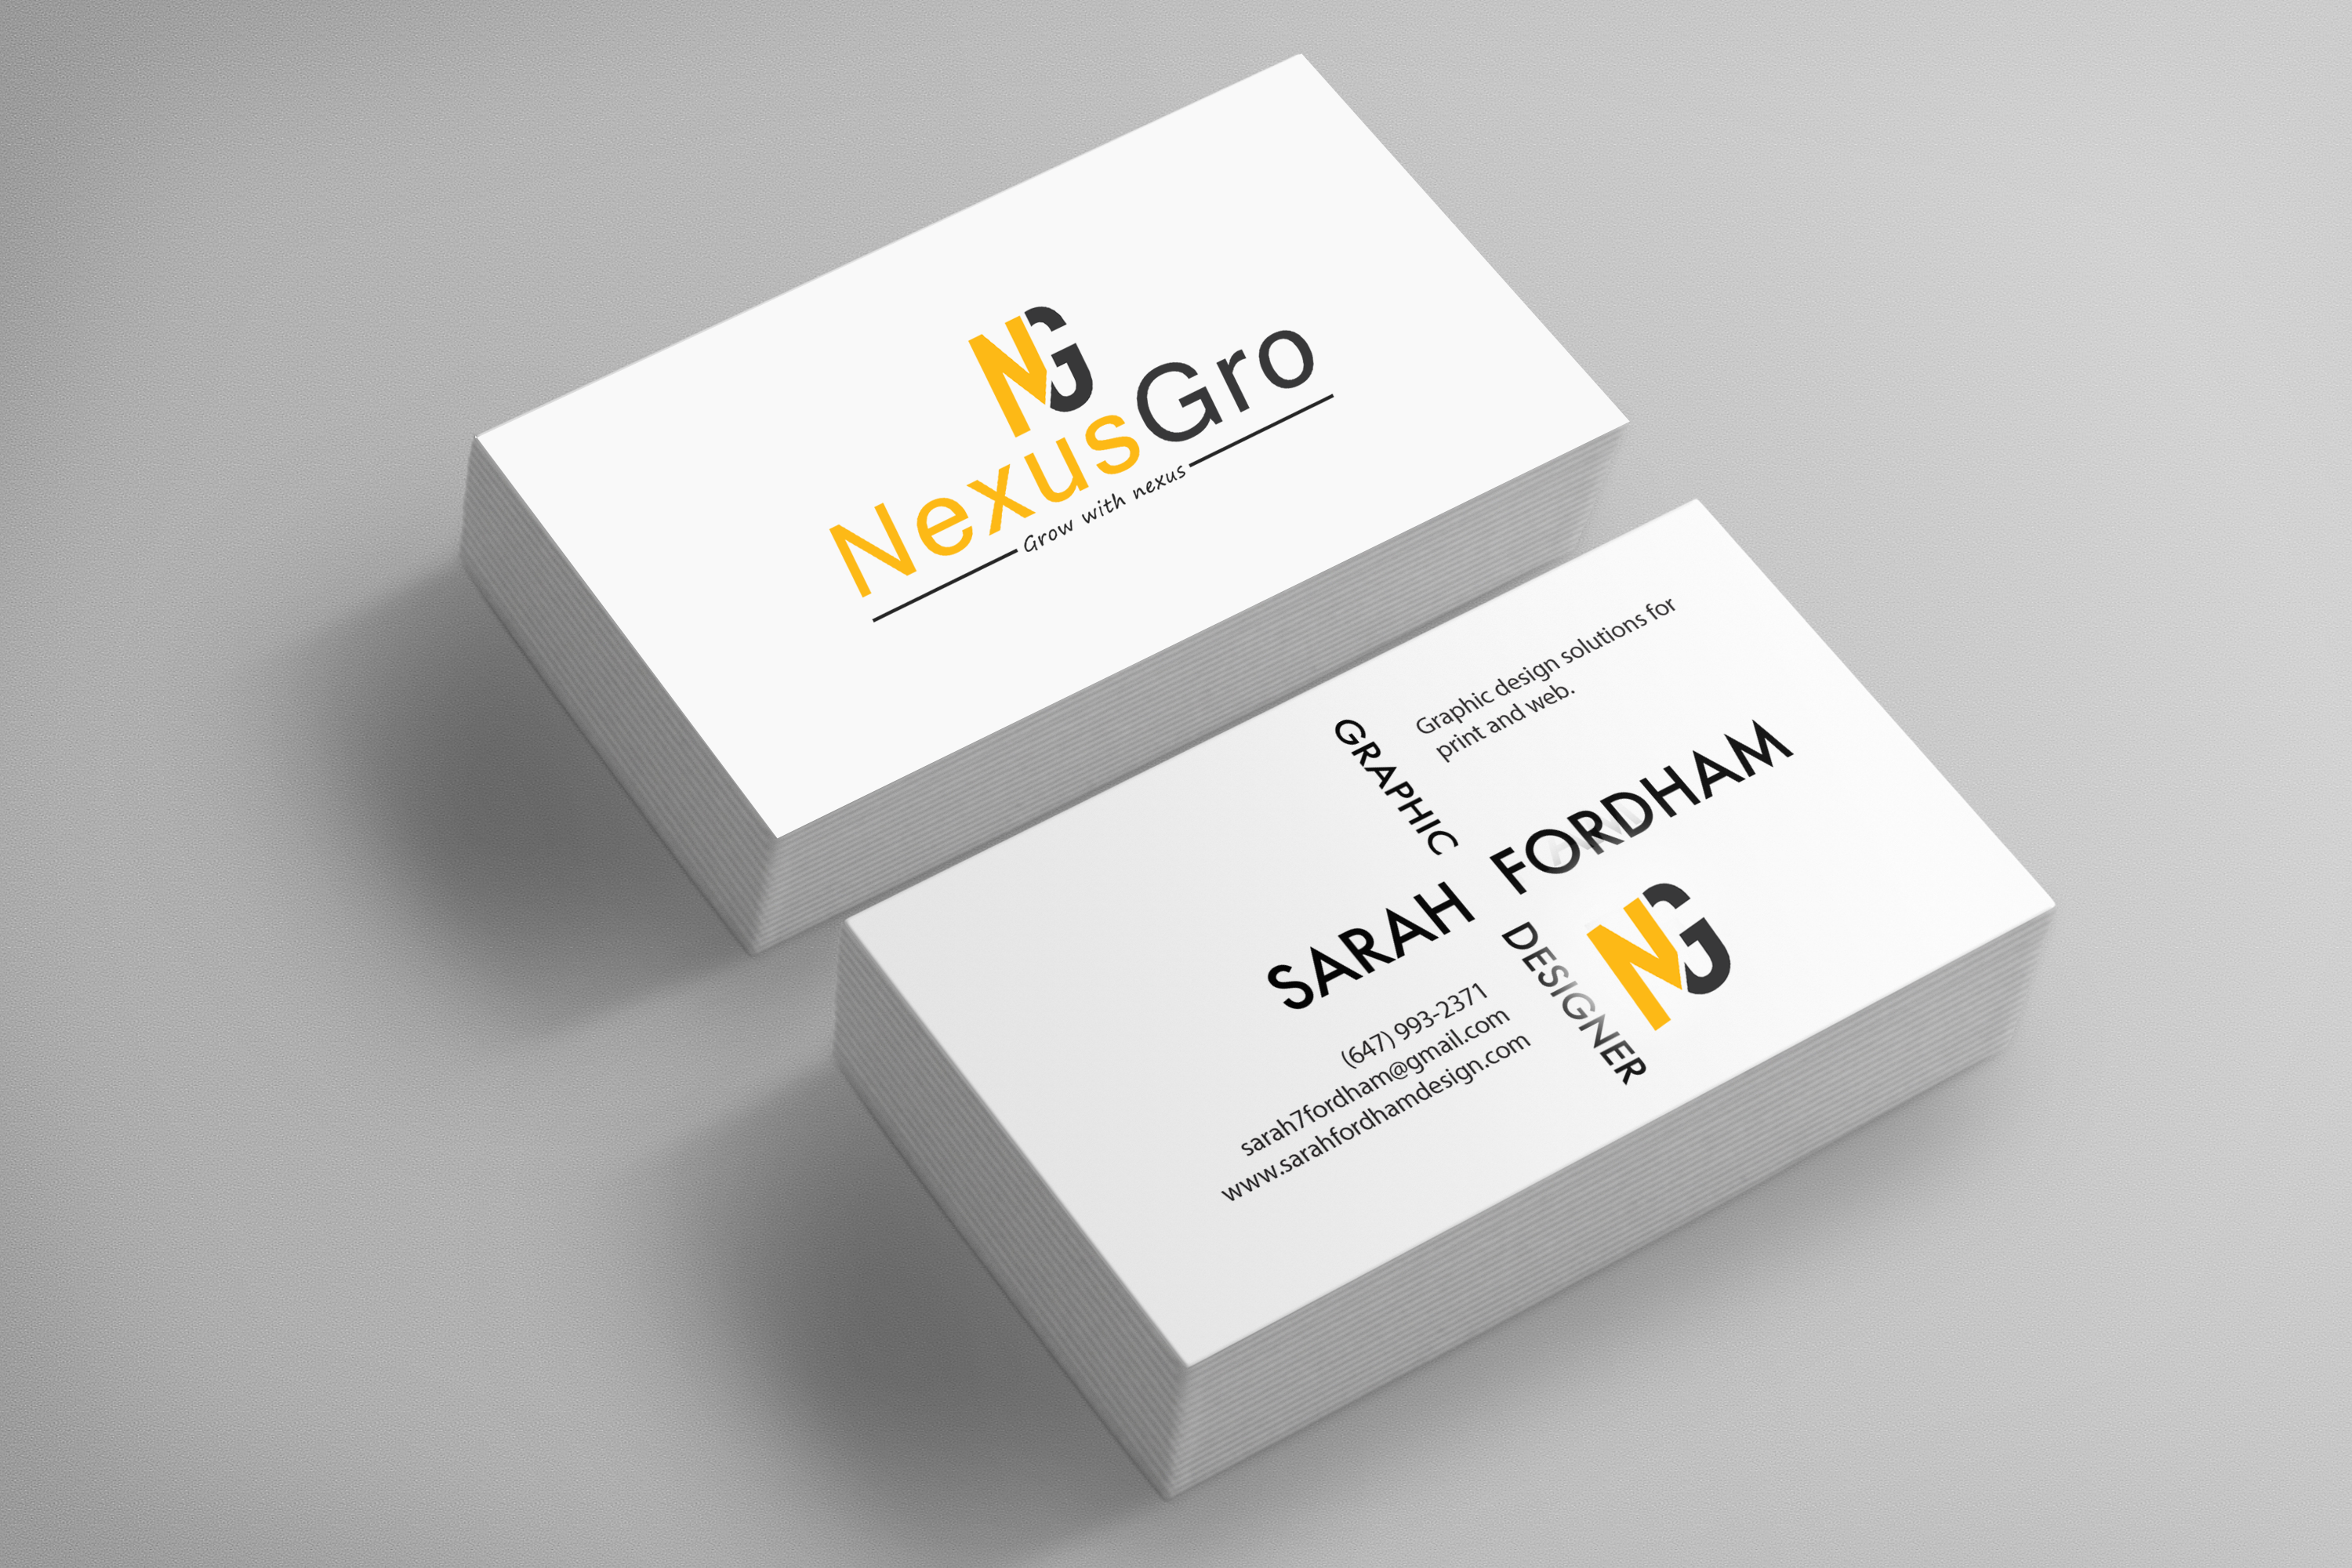 Pin by Shivam Chauhan on Logo Designs & Business Cards | Pinterest ...